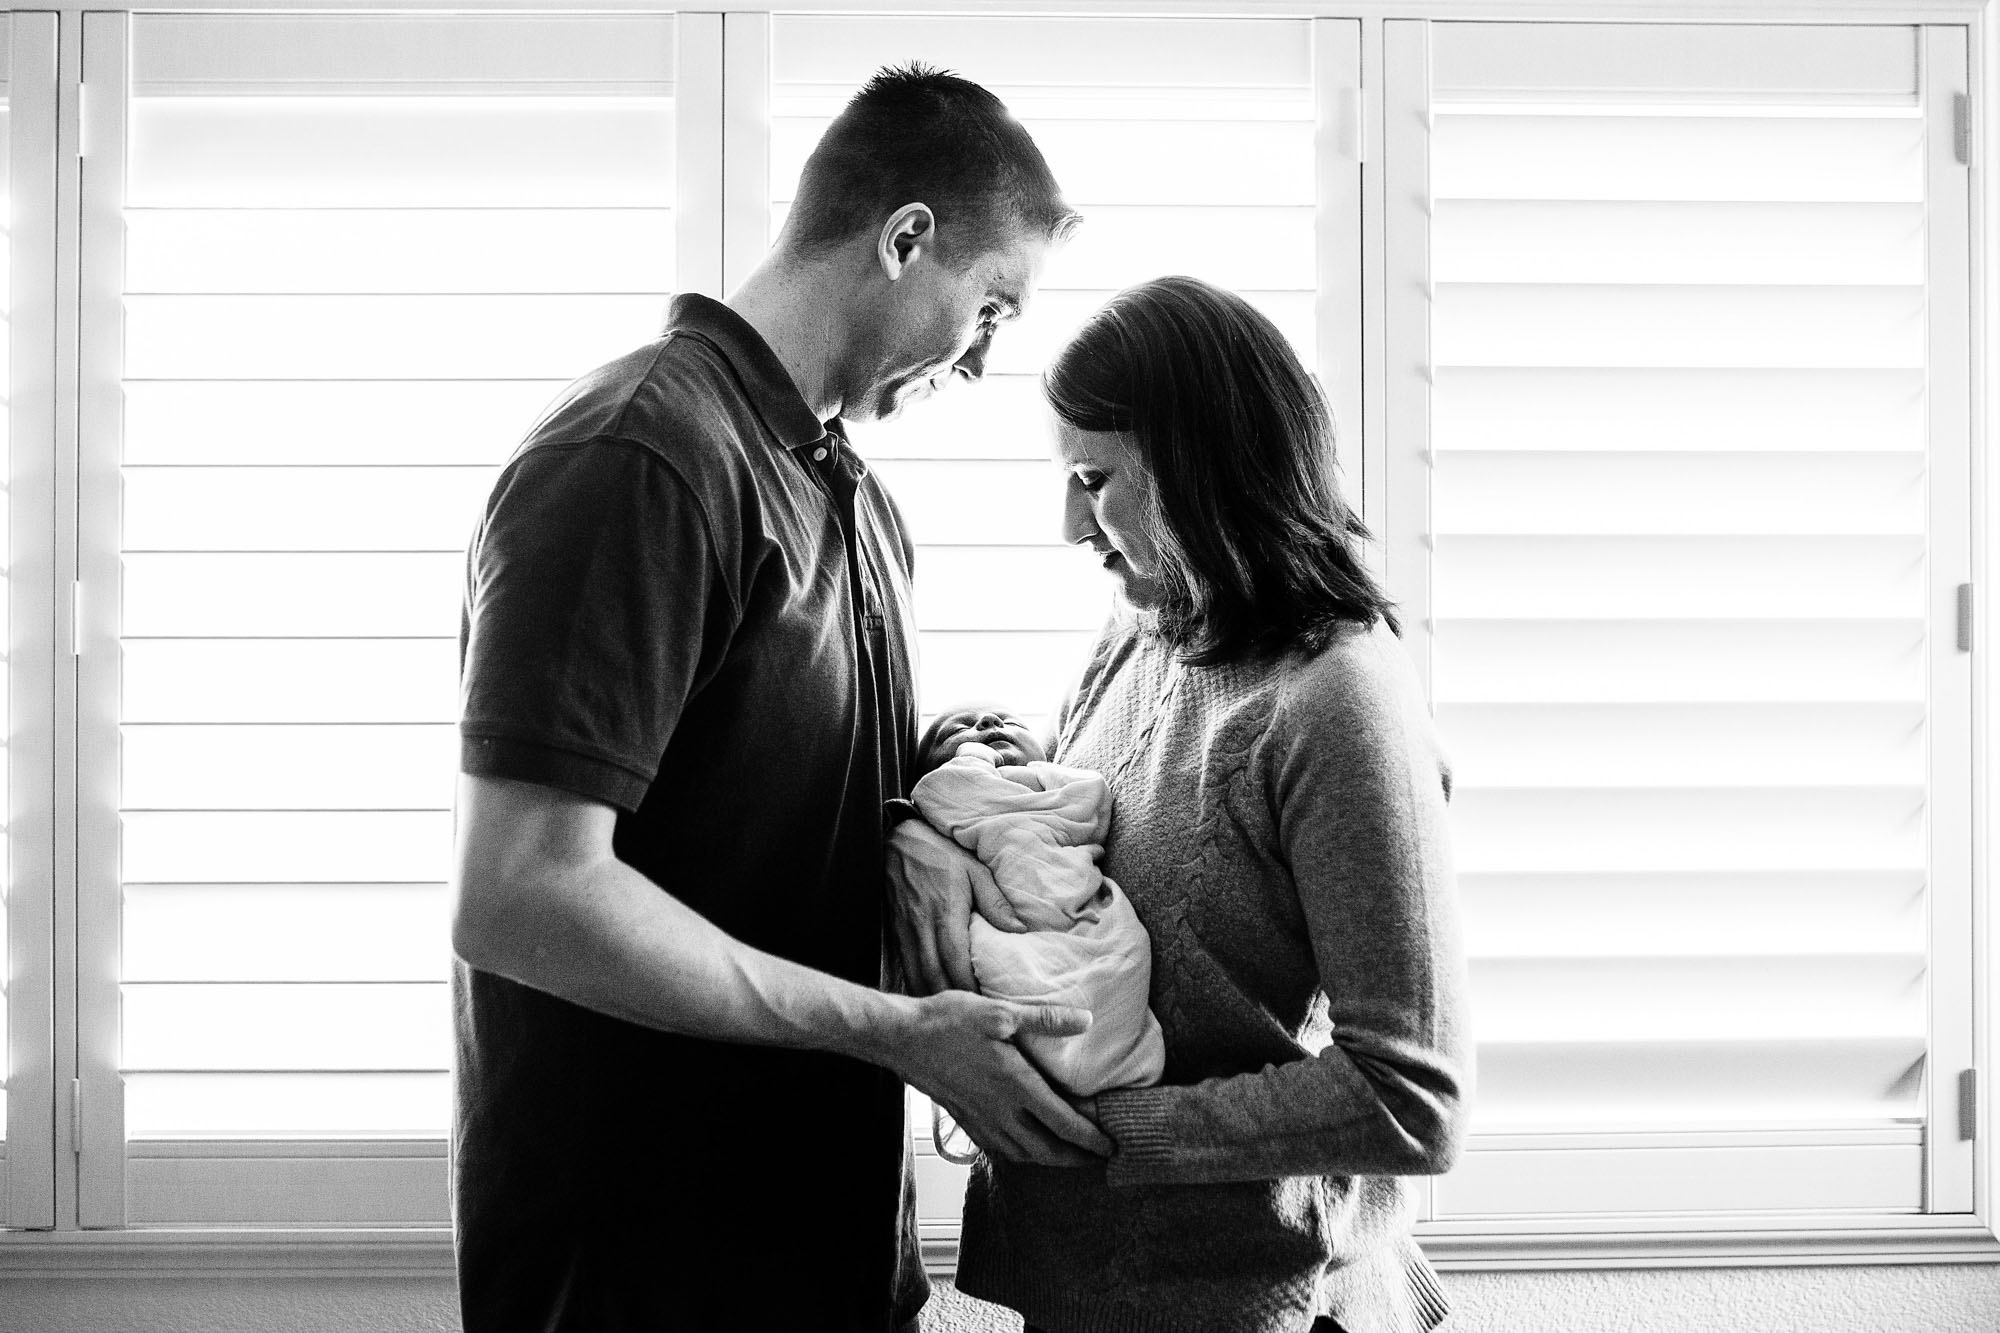 A mother and father admire their newborn baby as their pictures are taken by Amy Wright, a lifestyle photographer based out of Roseville, California.